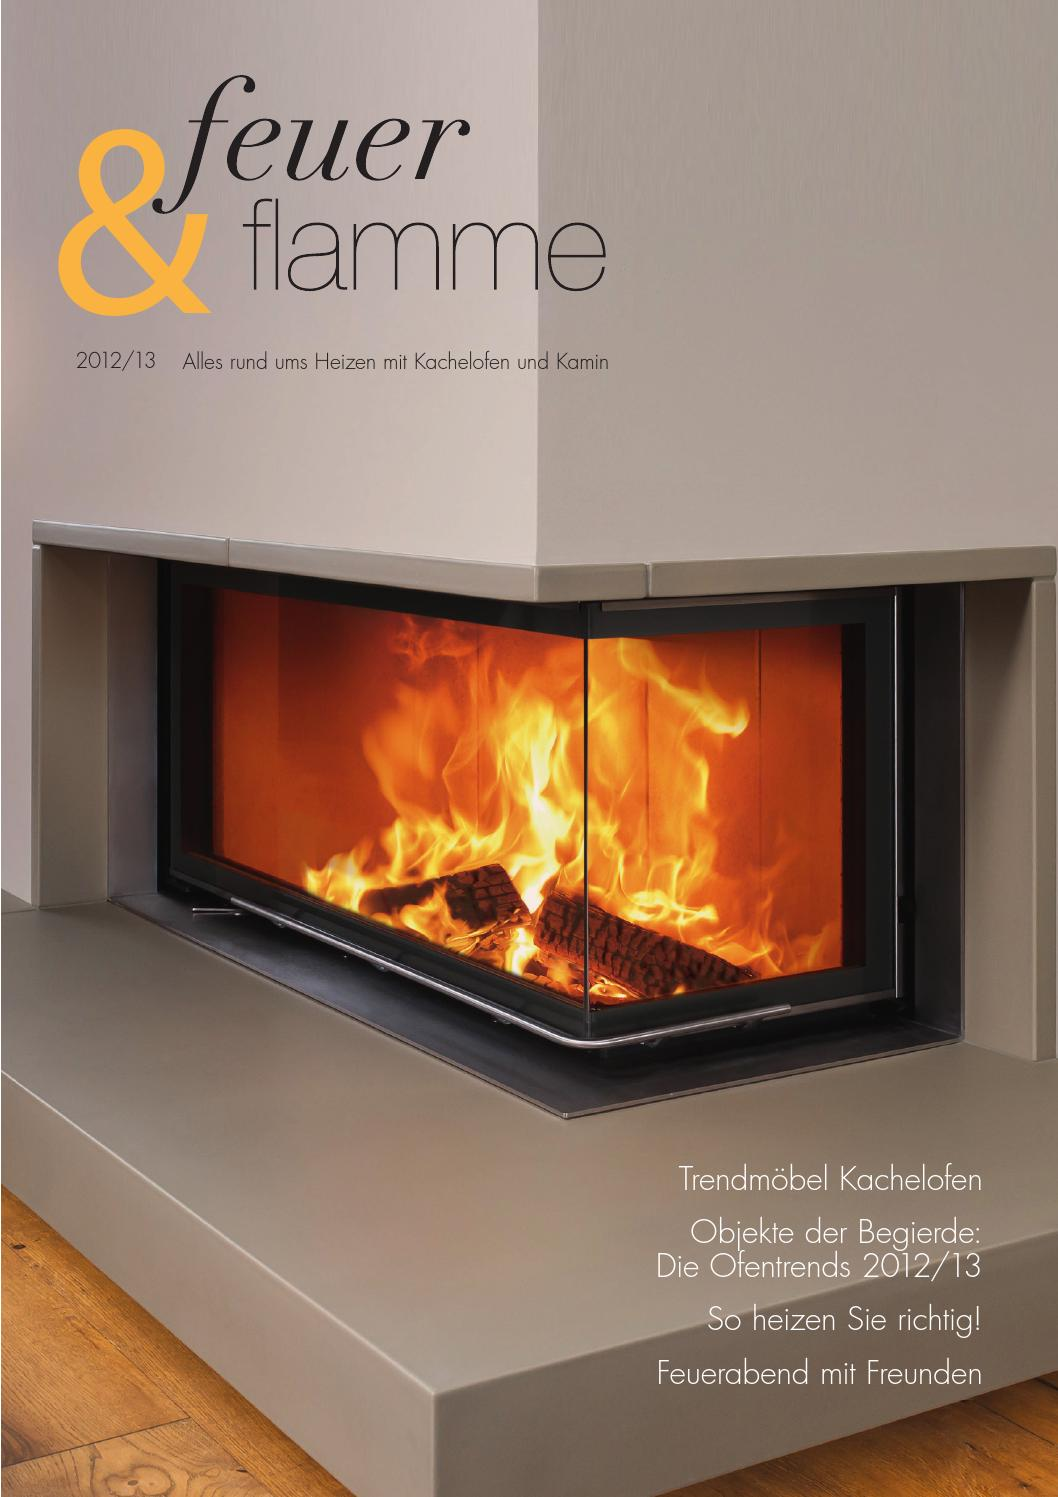 Kamin Innen Nachrüsten Feuer Flamme By Tom Seen Issuu